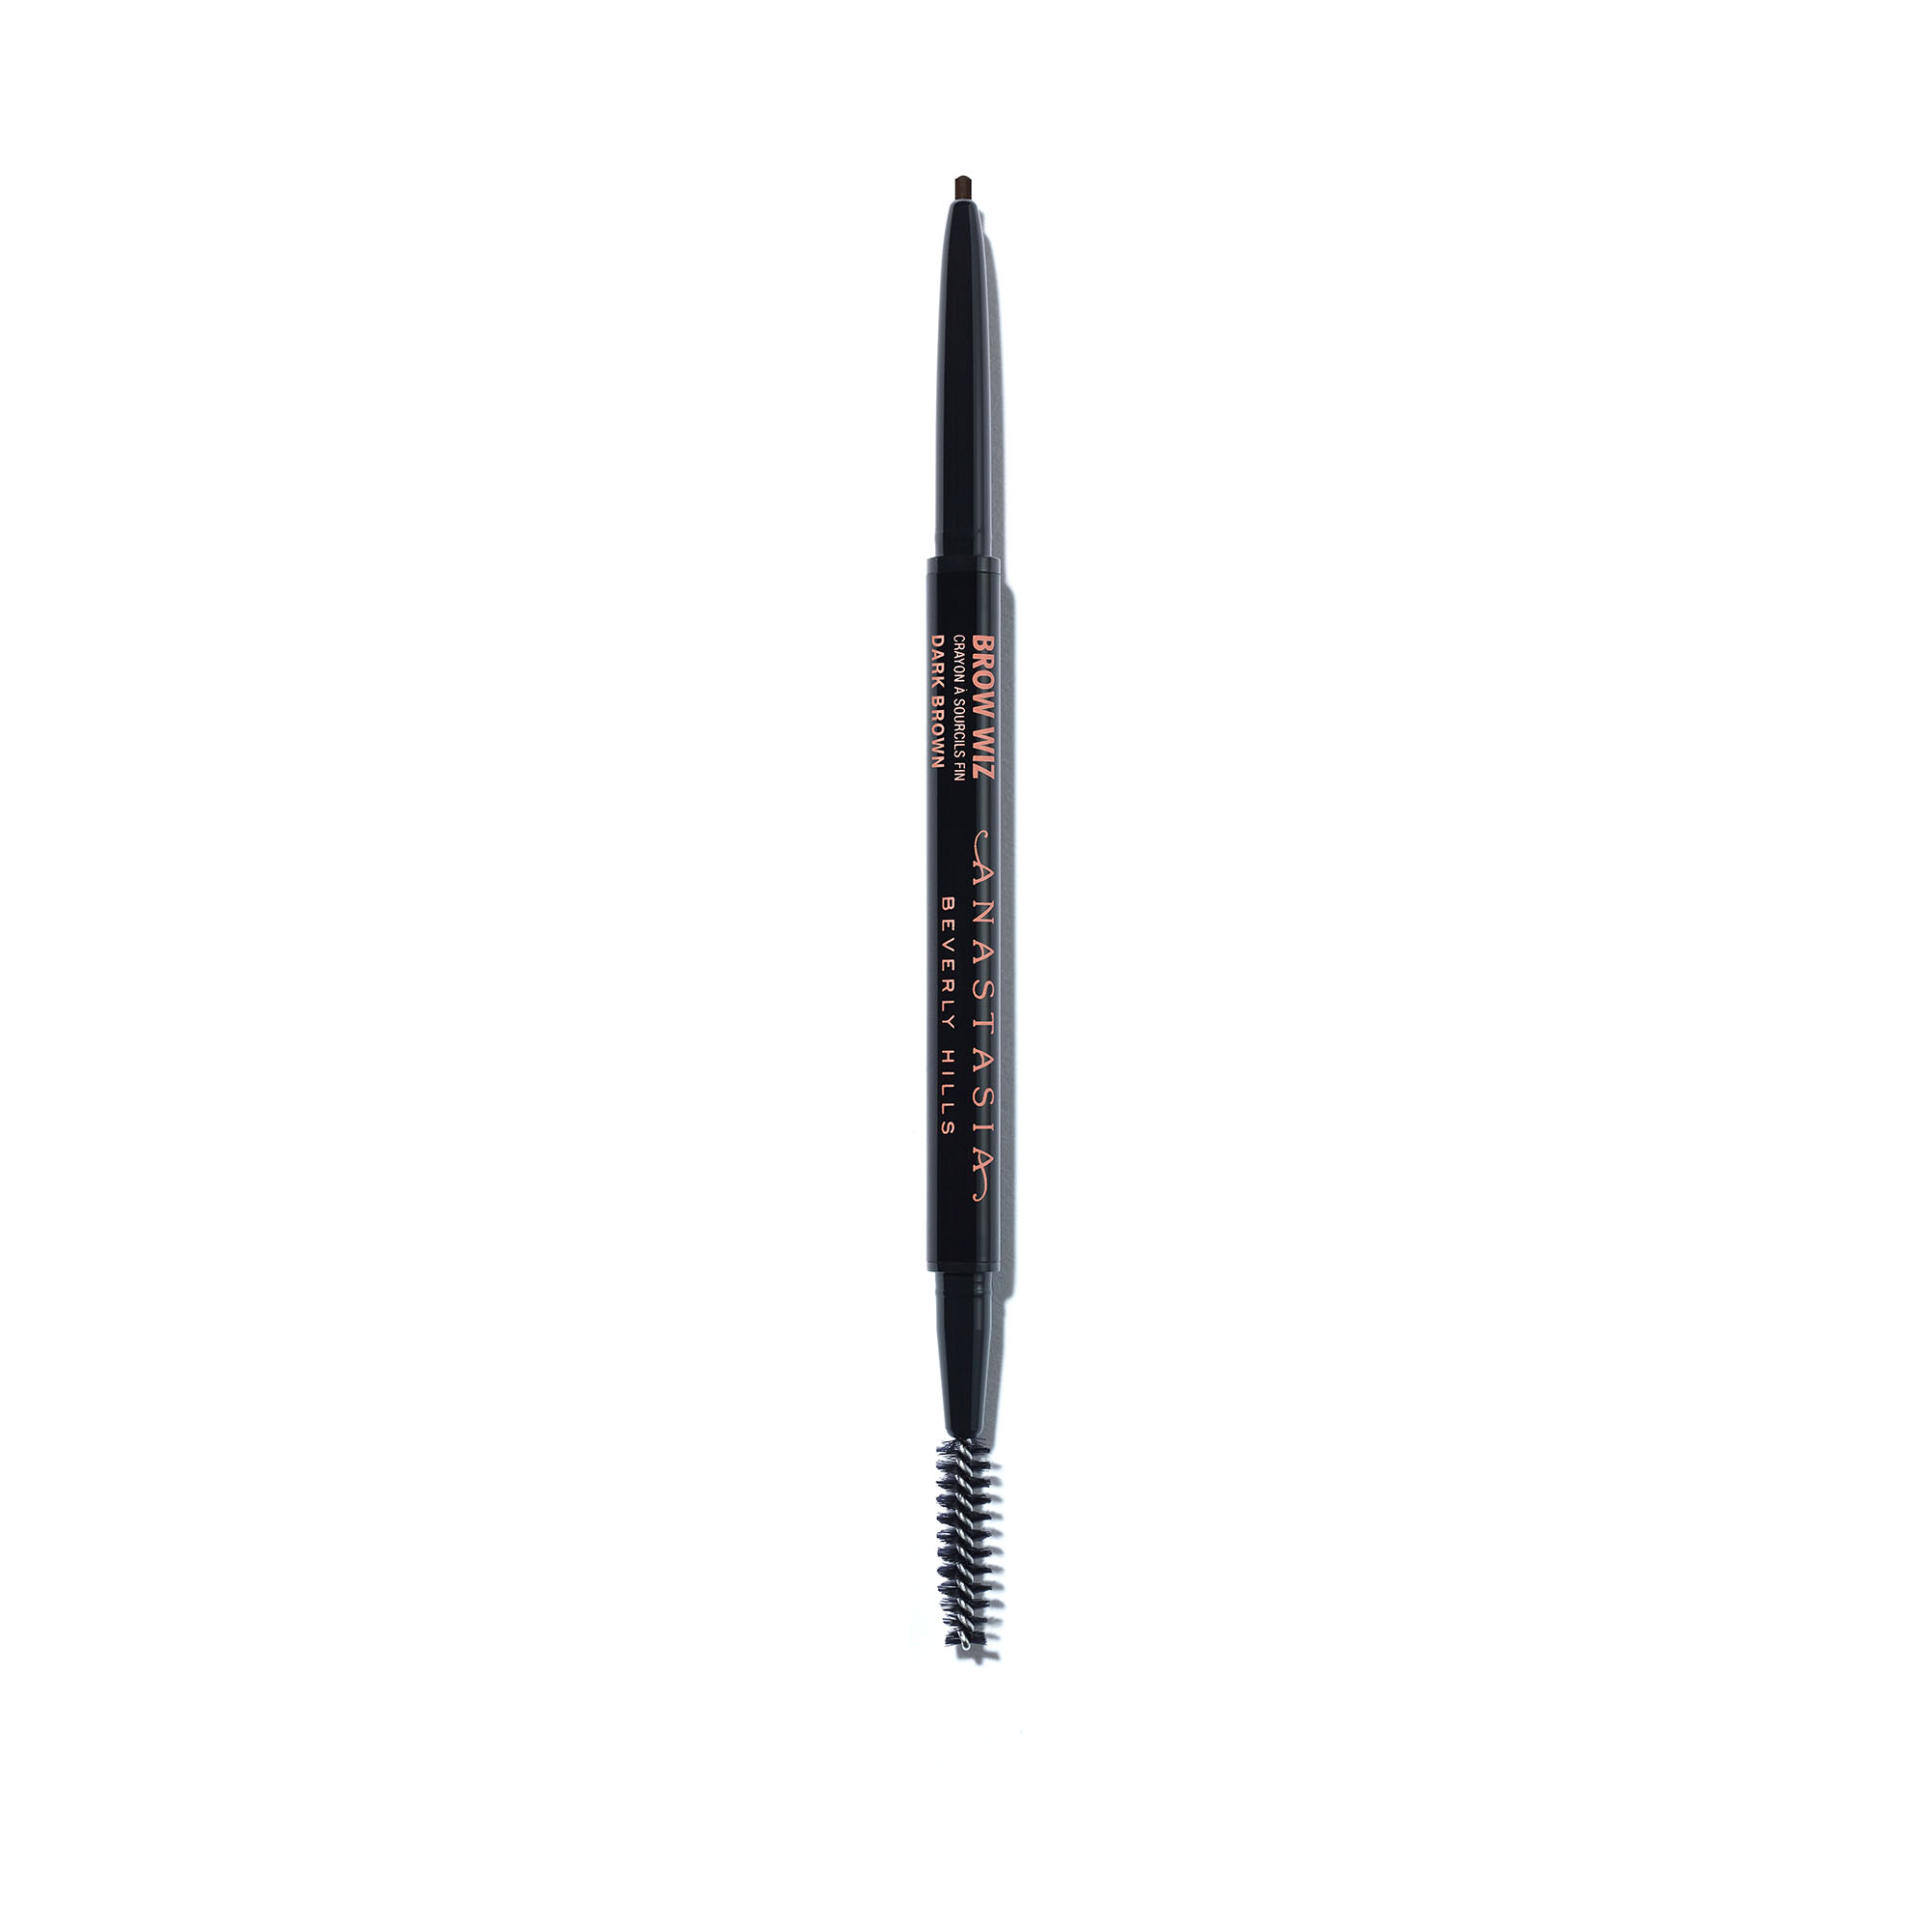 roughshod inwards dear thence halfway through the get-go pencil I've Replenished This Eyebrow Pencil iii Times - It's That Amazing